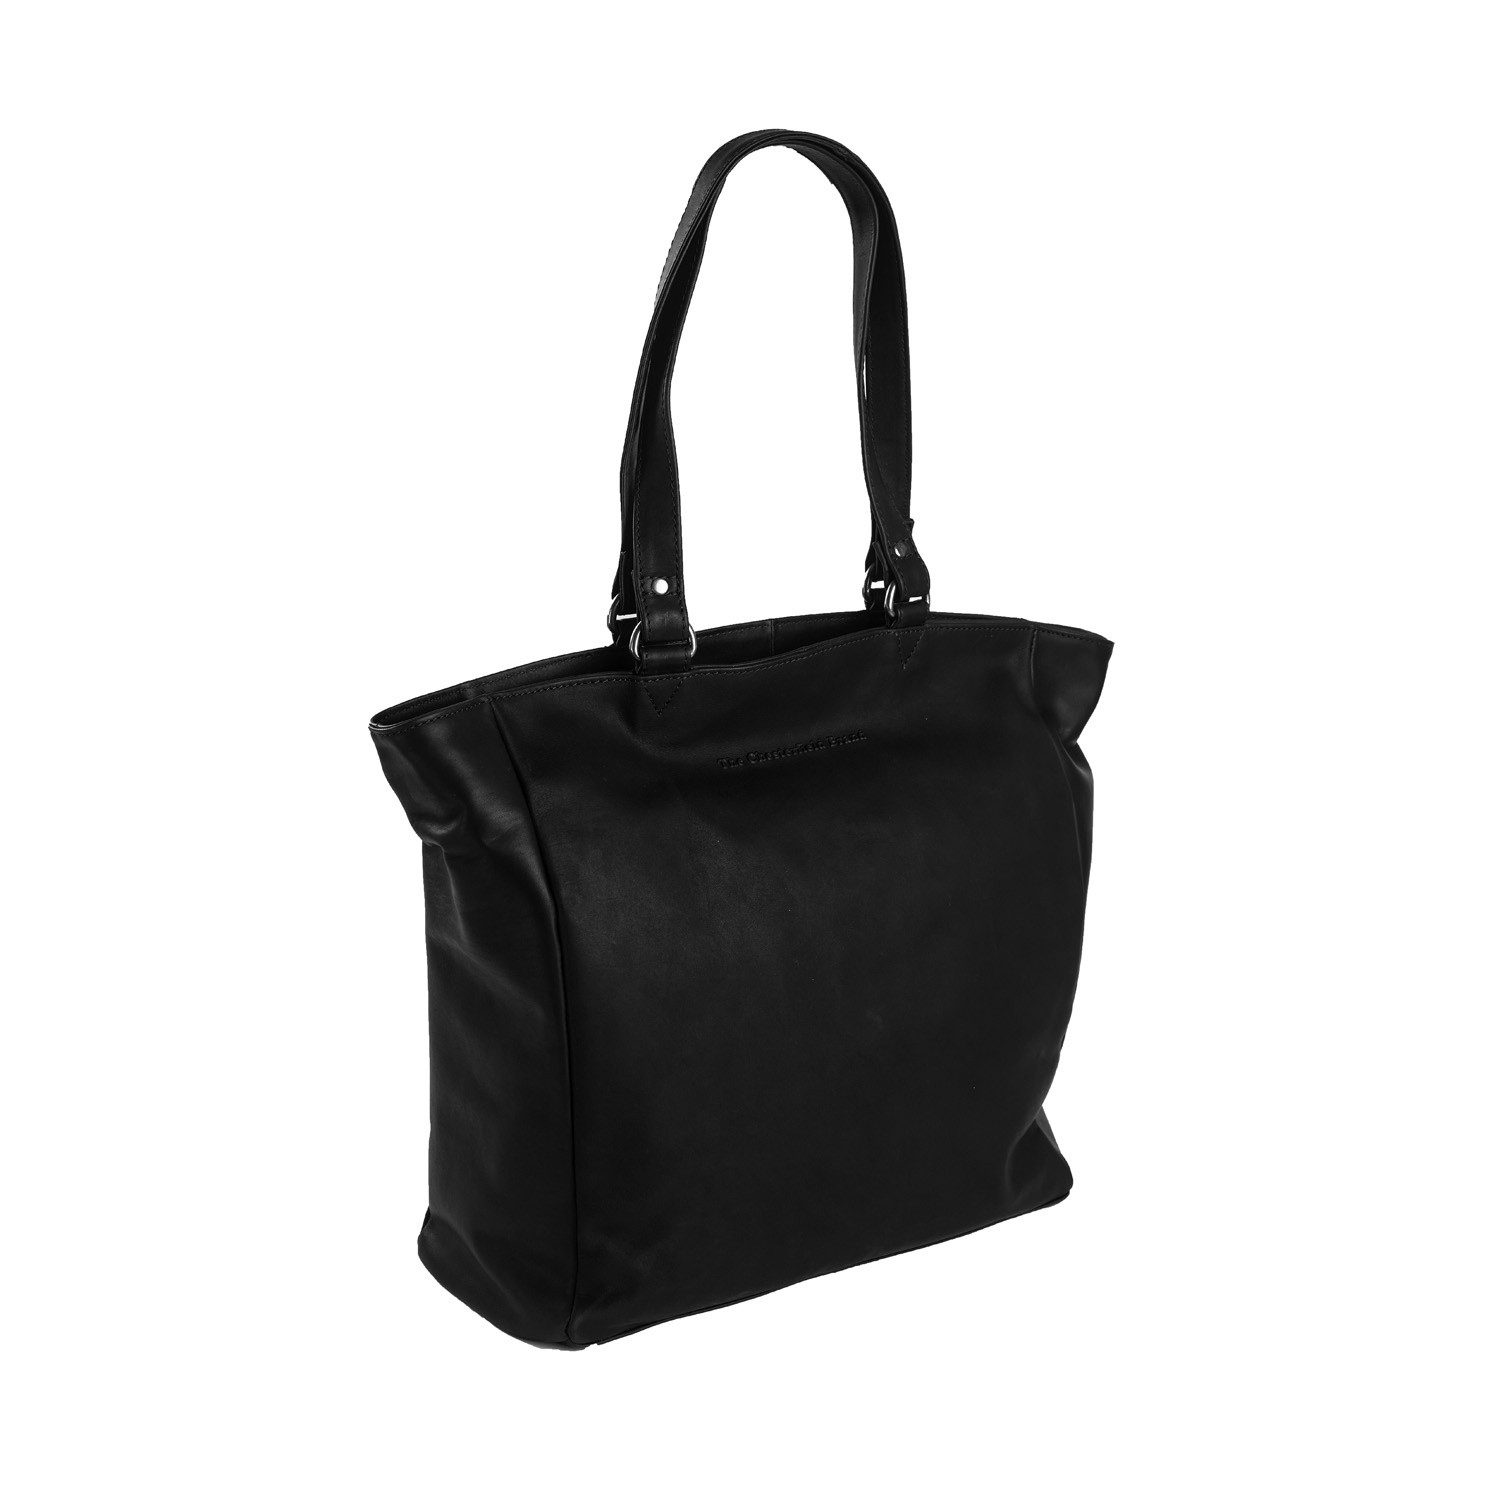 Bilde av Chesterfield Leather Shopper Black Berlin